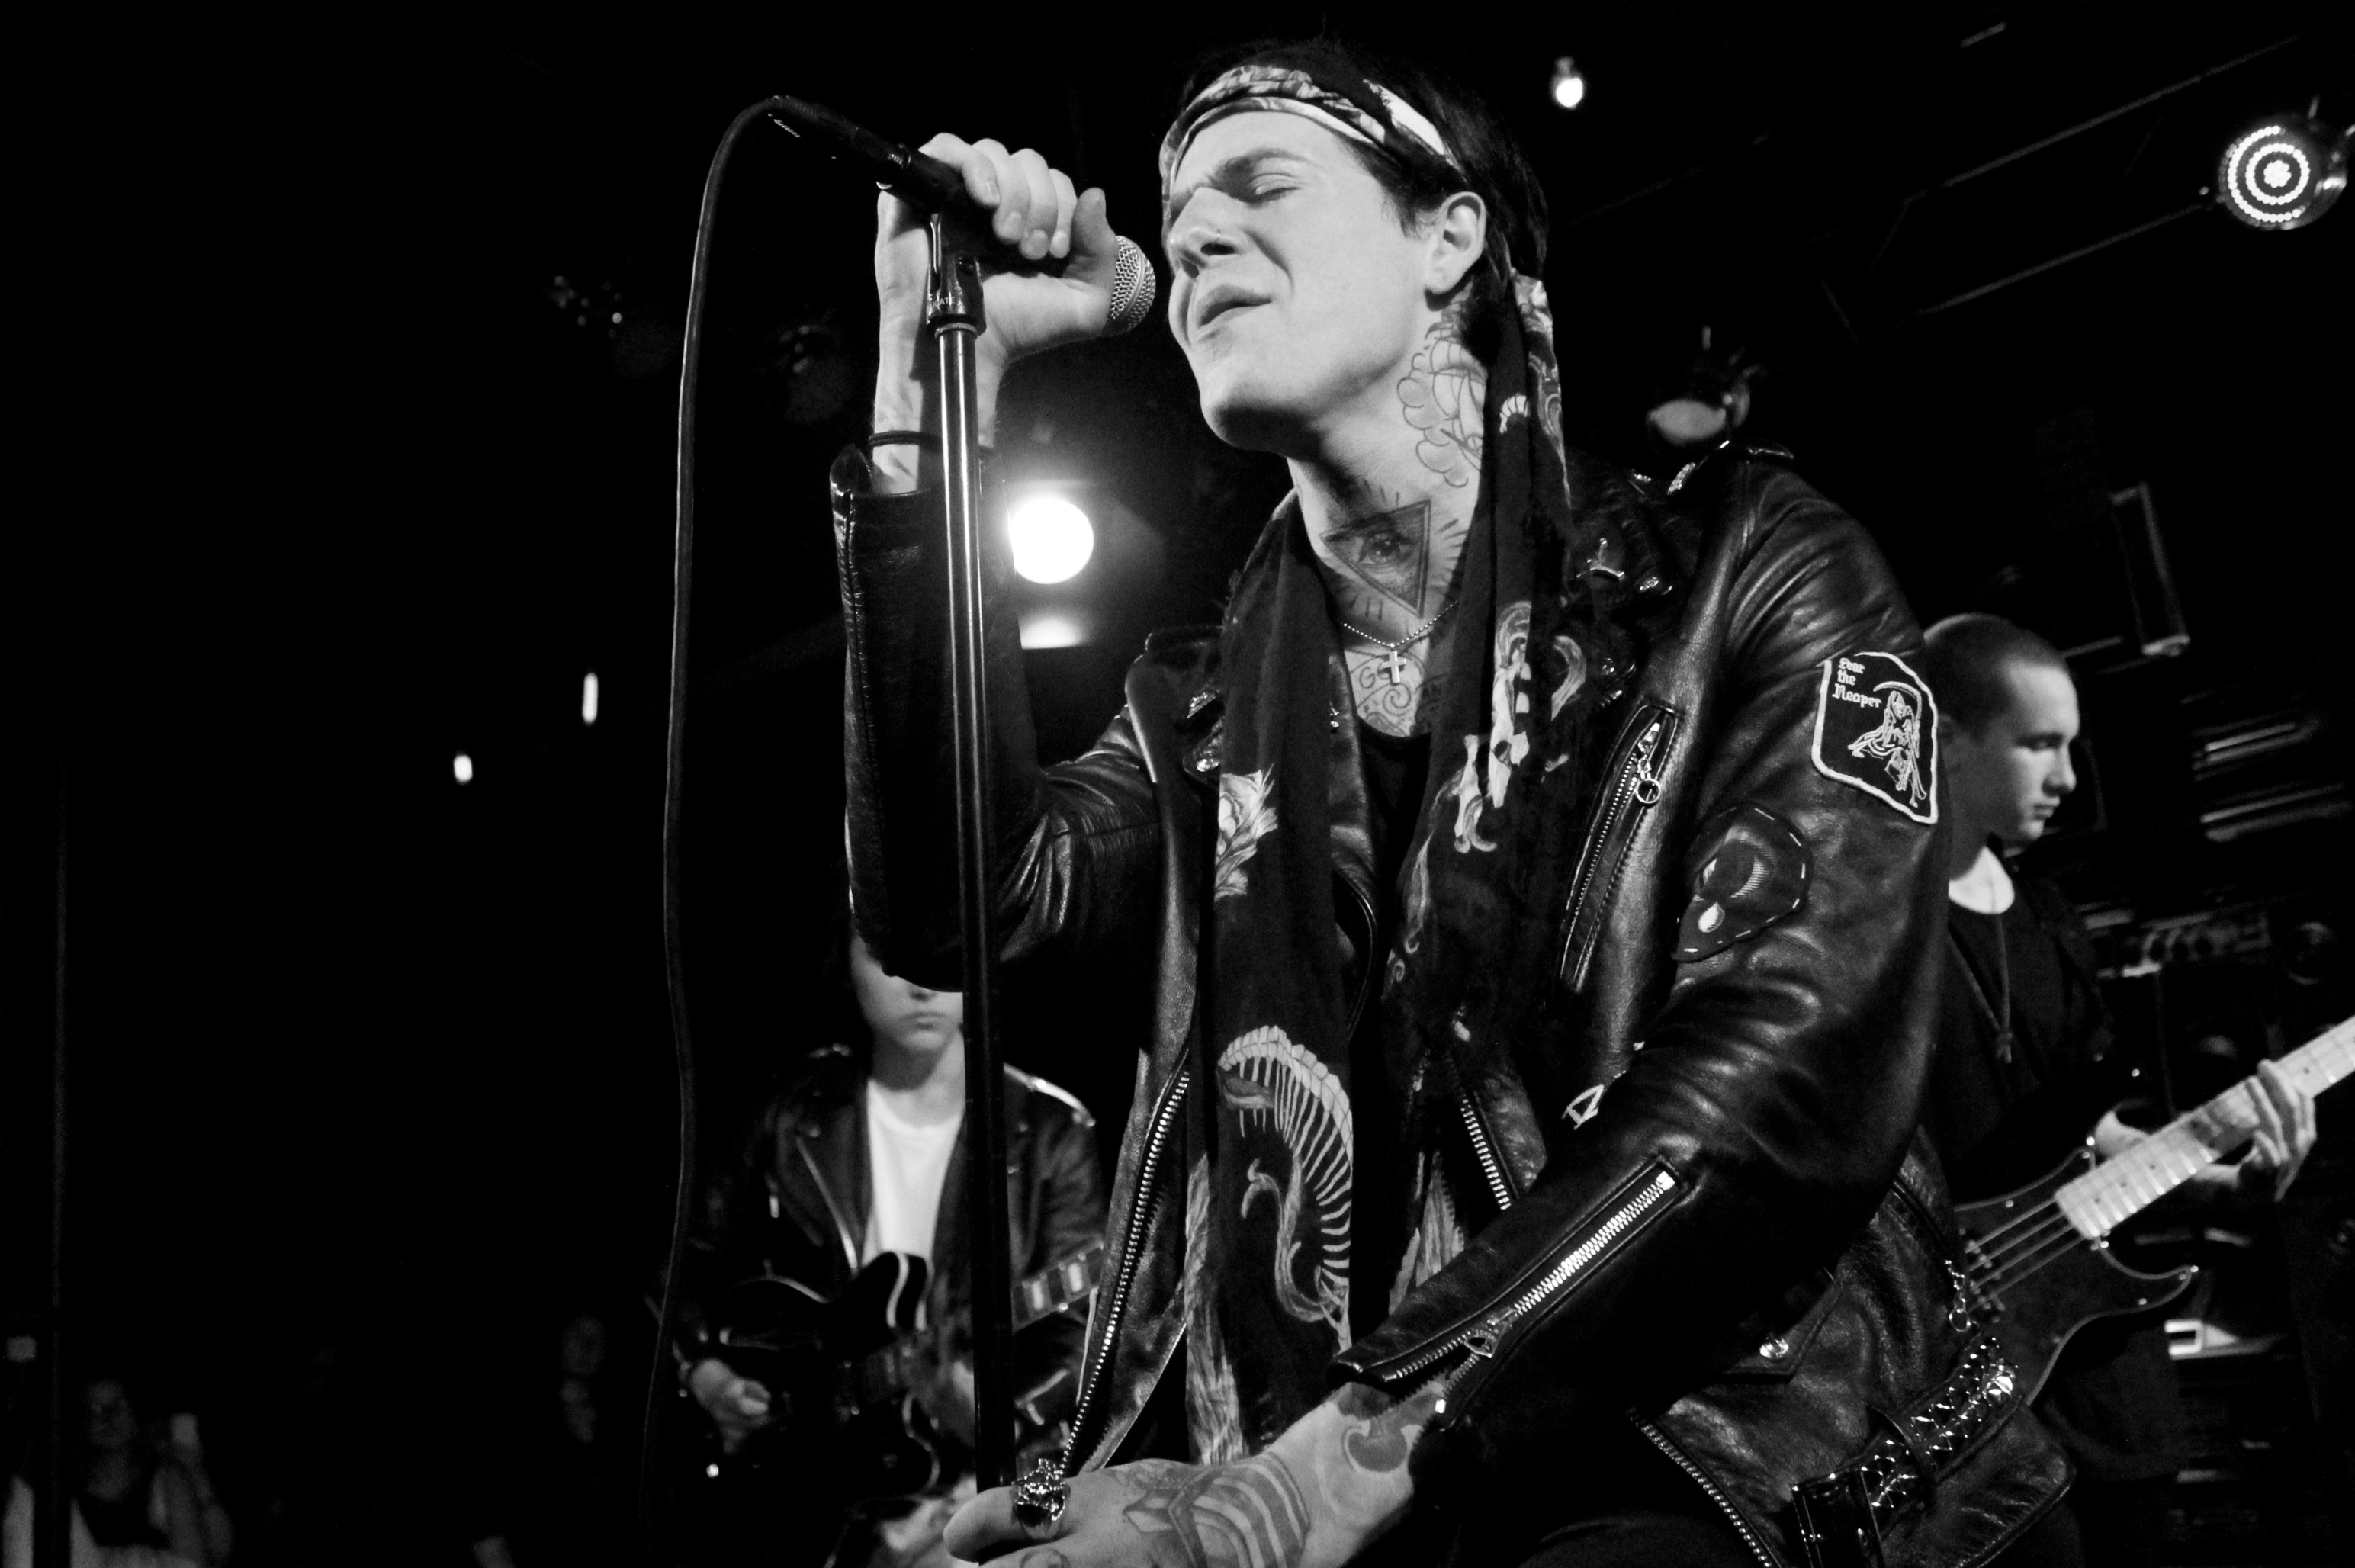 """The Neighbourhood Releases New Sci-Fi Style Video for """"Scary Love"""""""